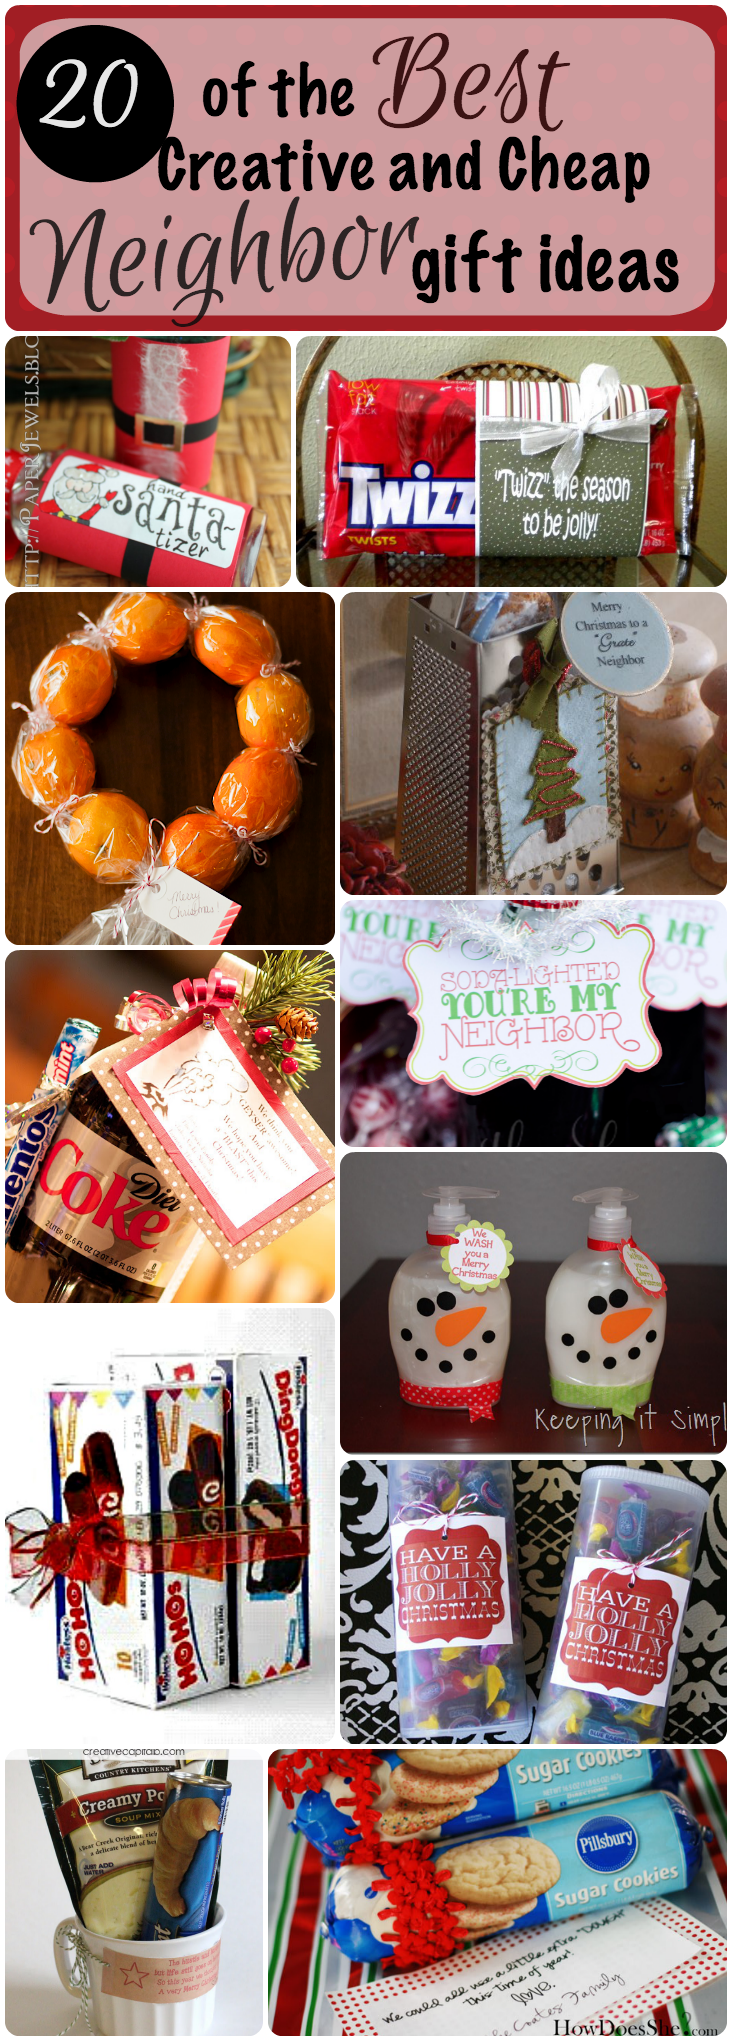 Still looking for that perfect Christmas neighbor gift to give this year? Look no further! Here is a great idea for under $1 (and a roundup of more ideas!)